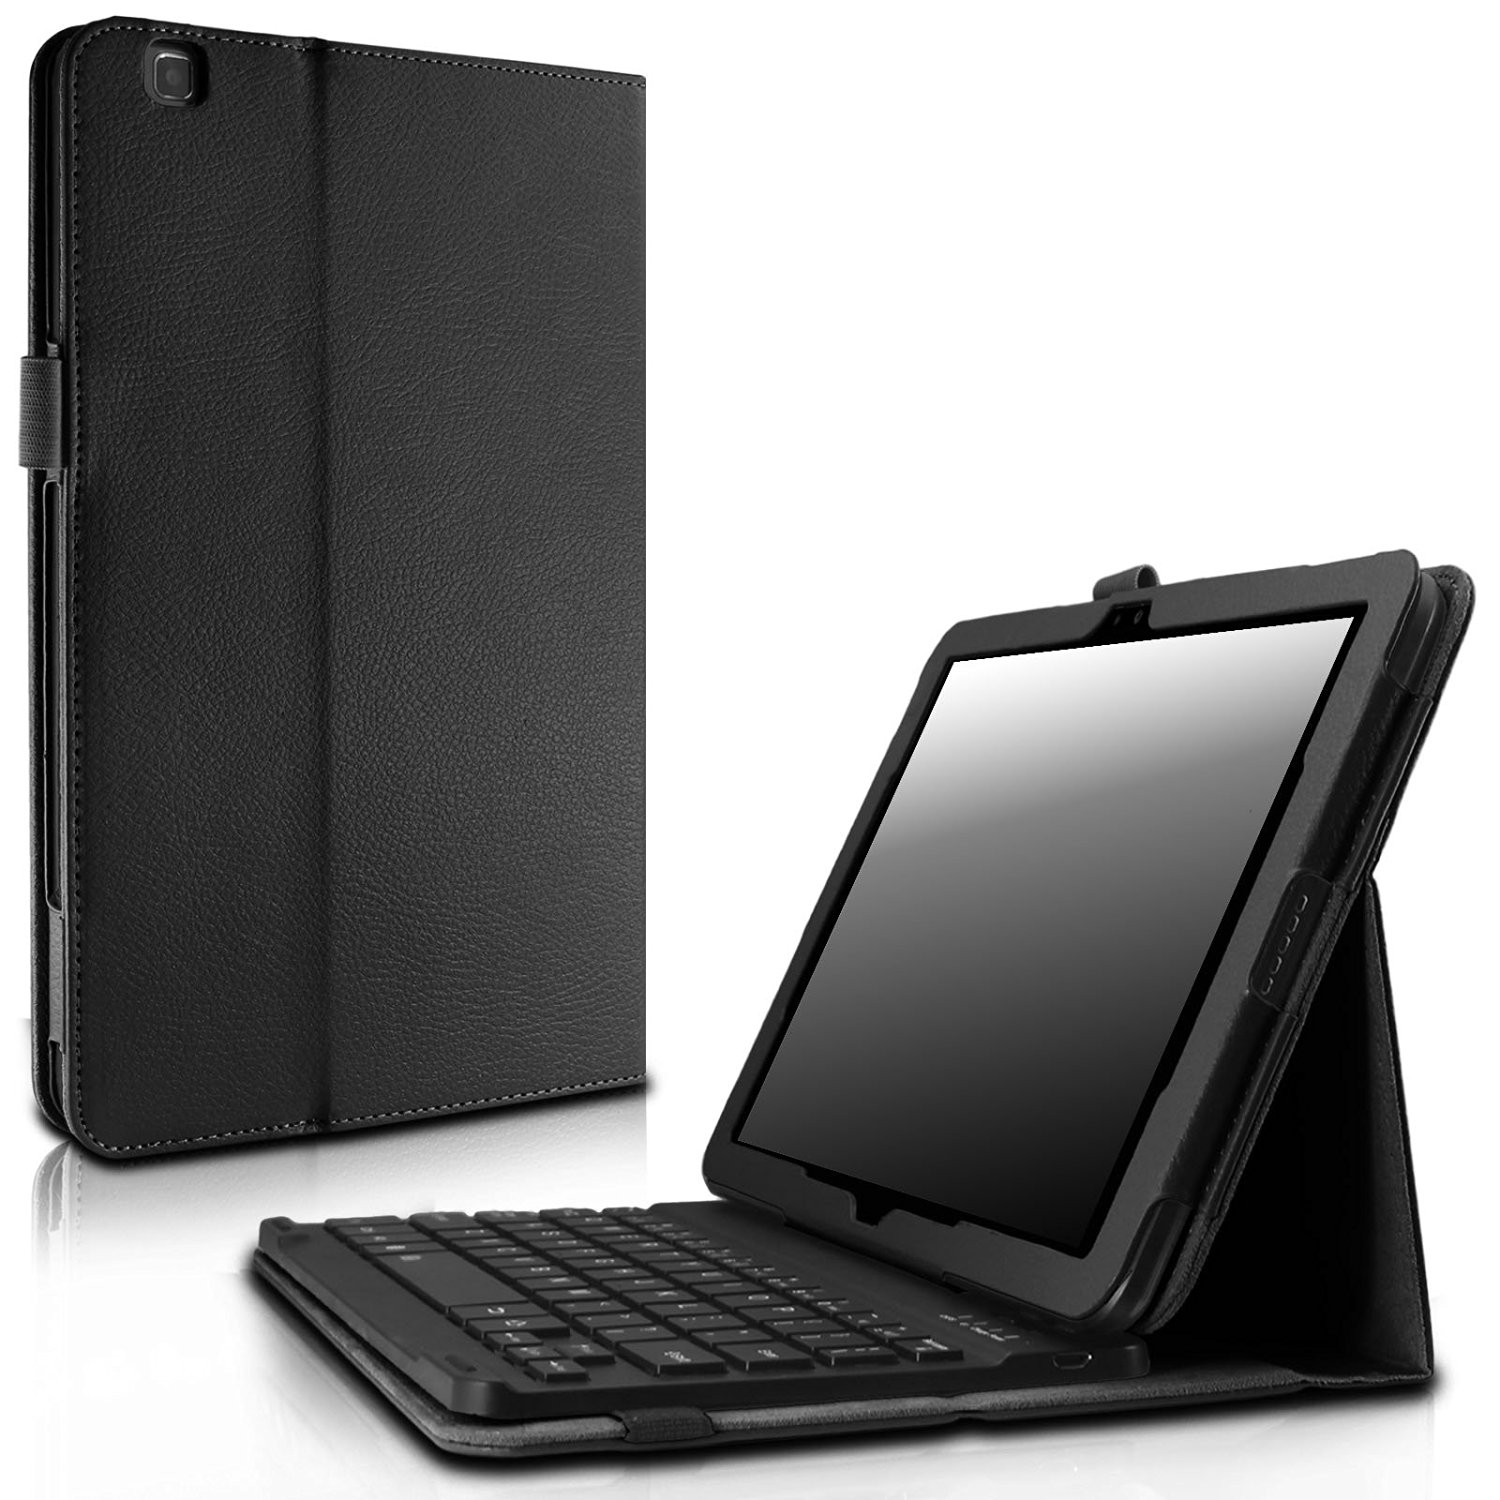 Infiland LG G PAD X 10.1 / G Pad II 10.1 Keyboard Case, Folio Slim Stand Case with Magnetically Wireless Bluetooth Keyboard For LG G PAD X 10.1 (4G LTE AT&T V930) / LG G Pad 2 10.1(V940), Black